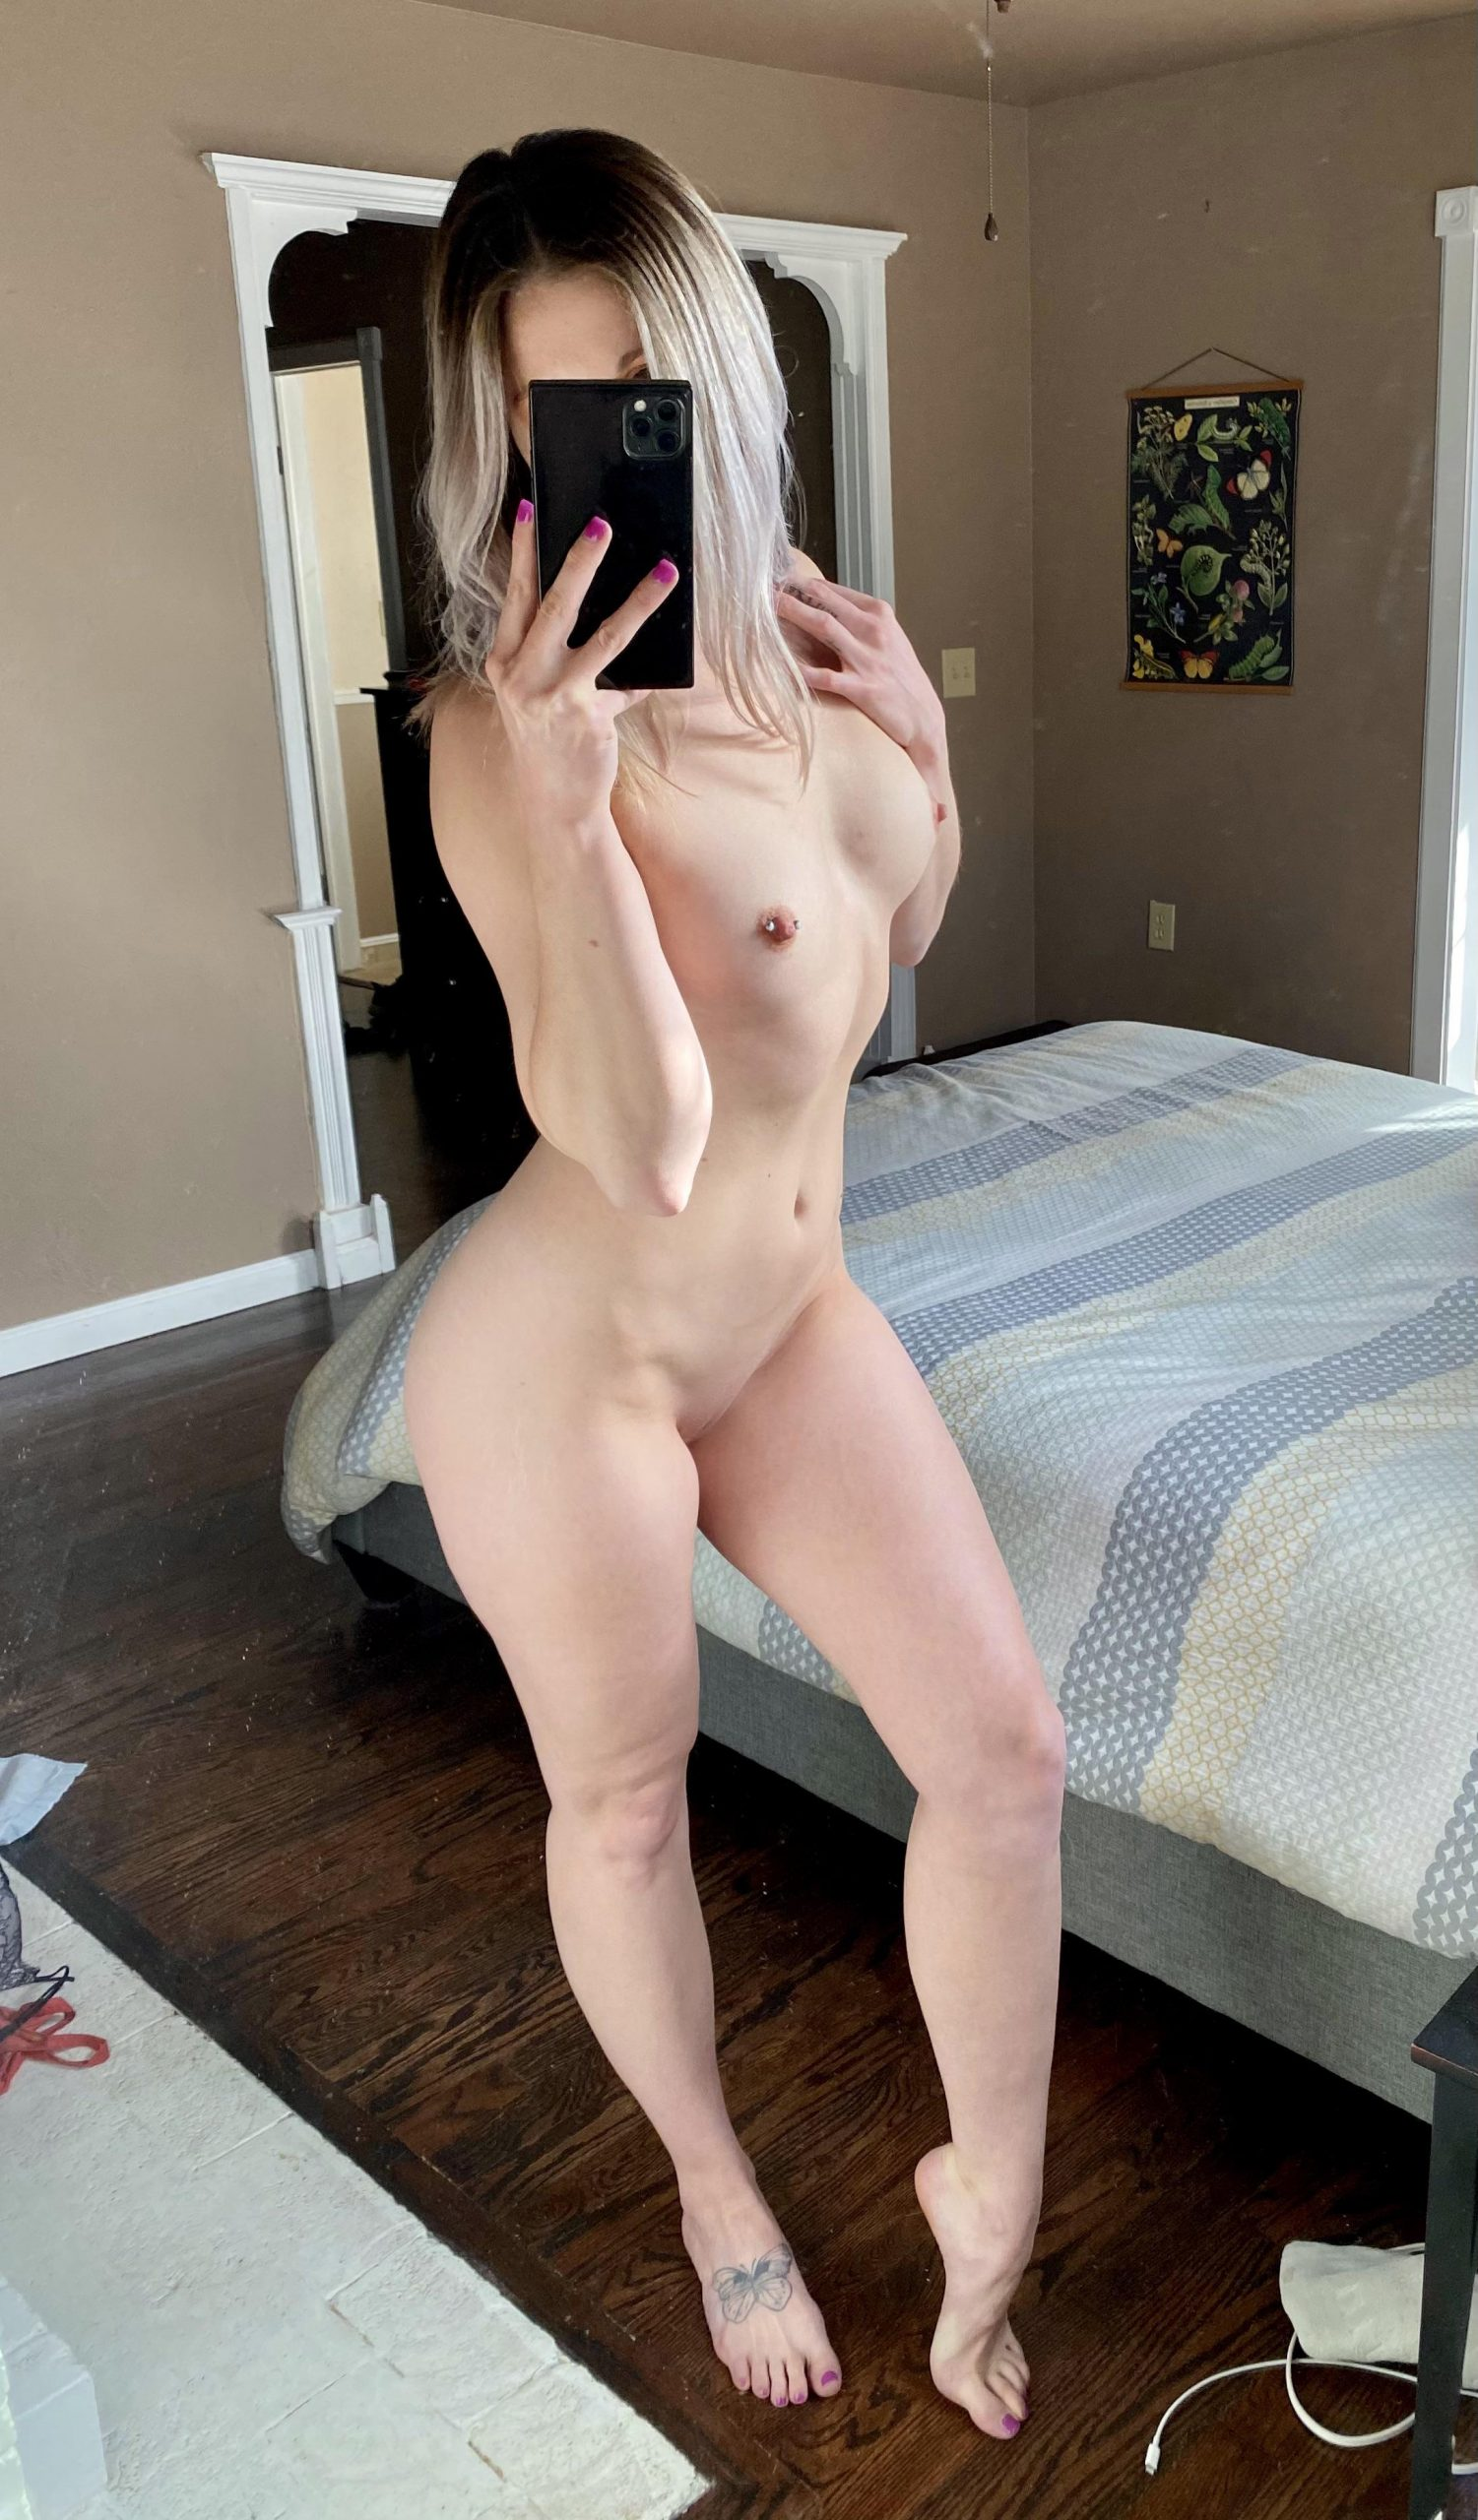 Gym Pose But Made It Nude